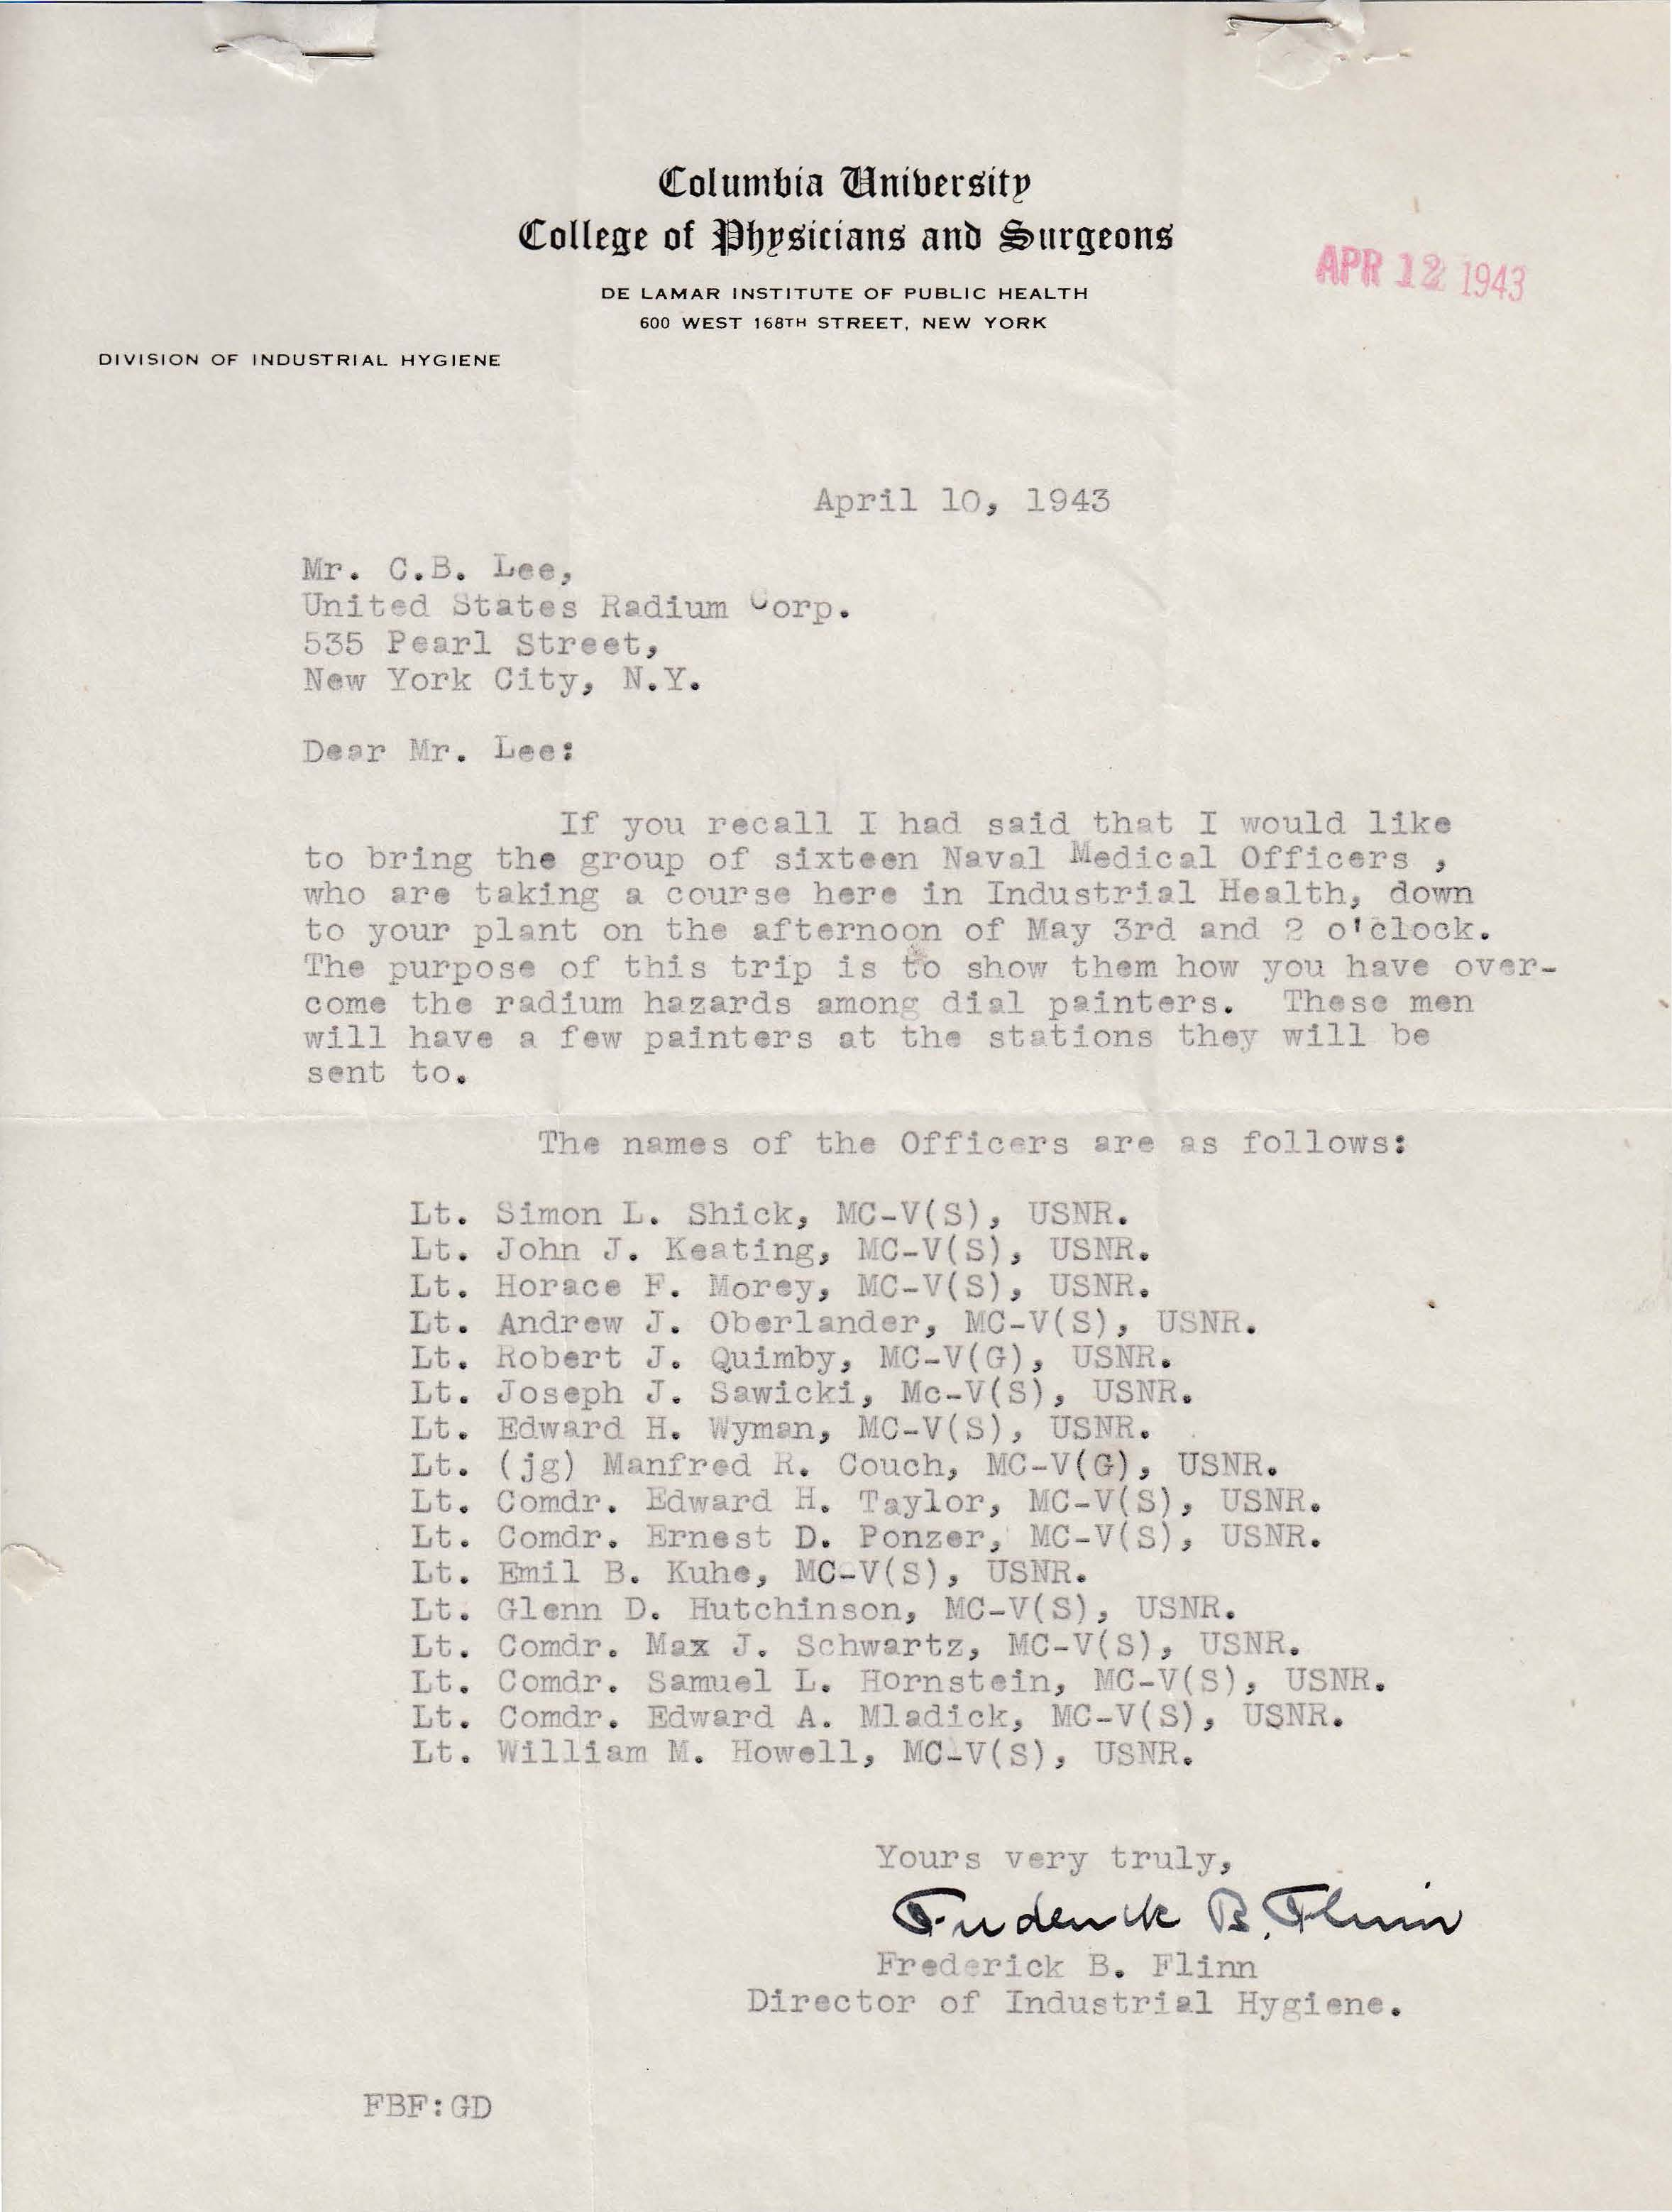 Letters Received to C.B. Lee, April 10, 1943